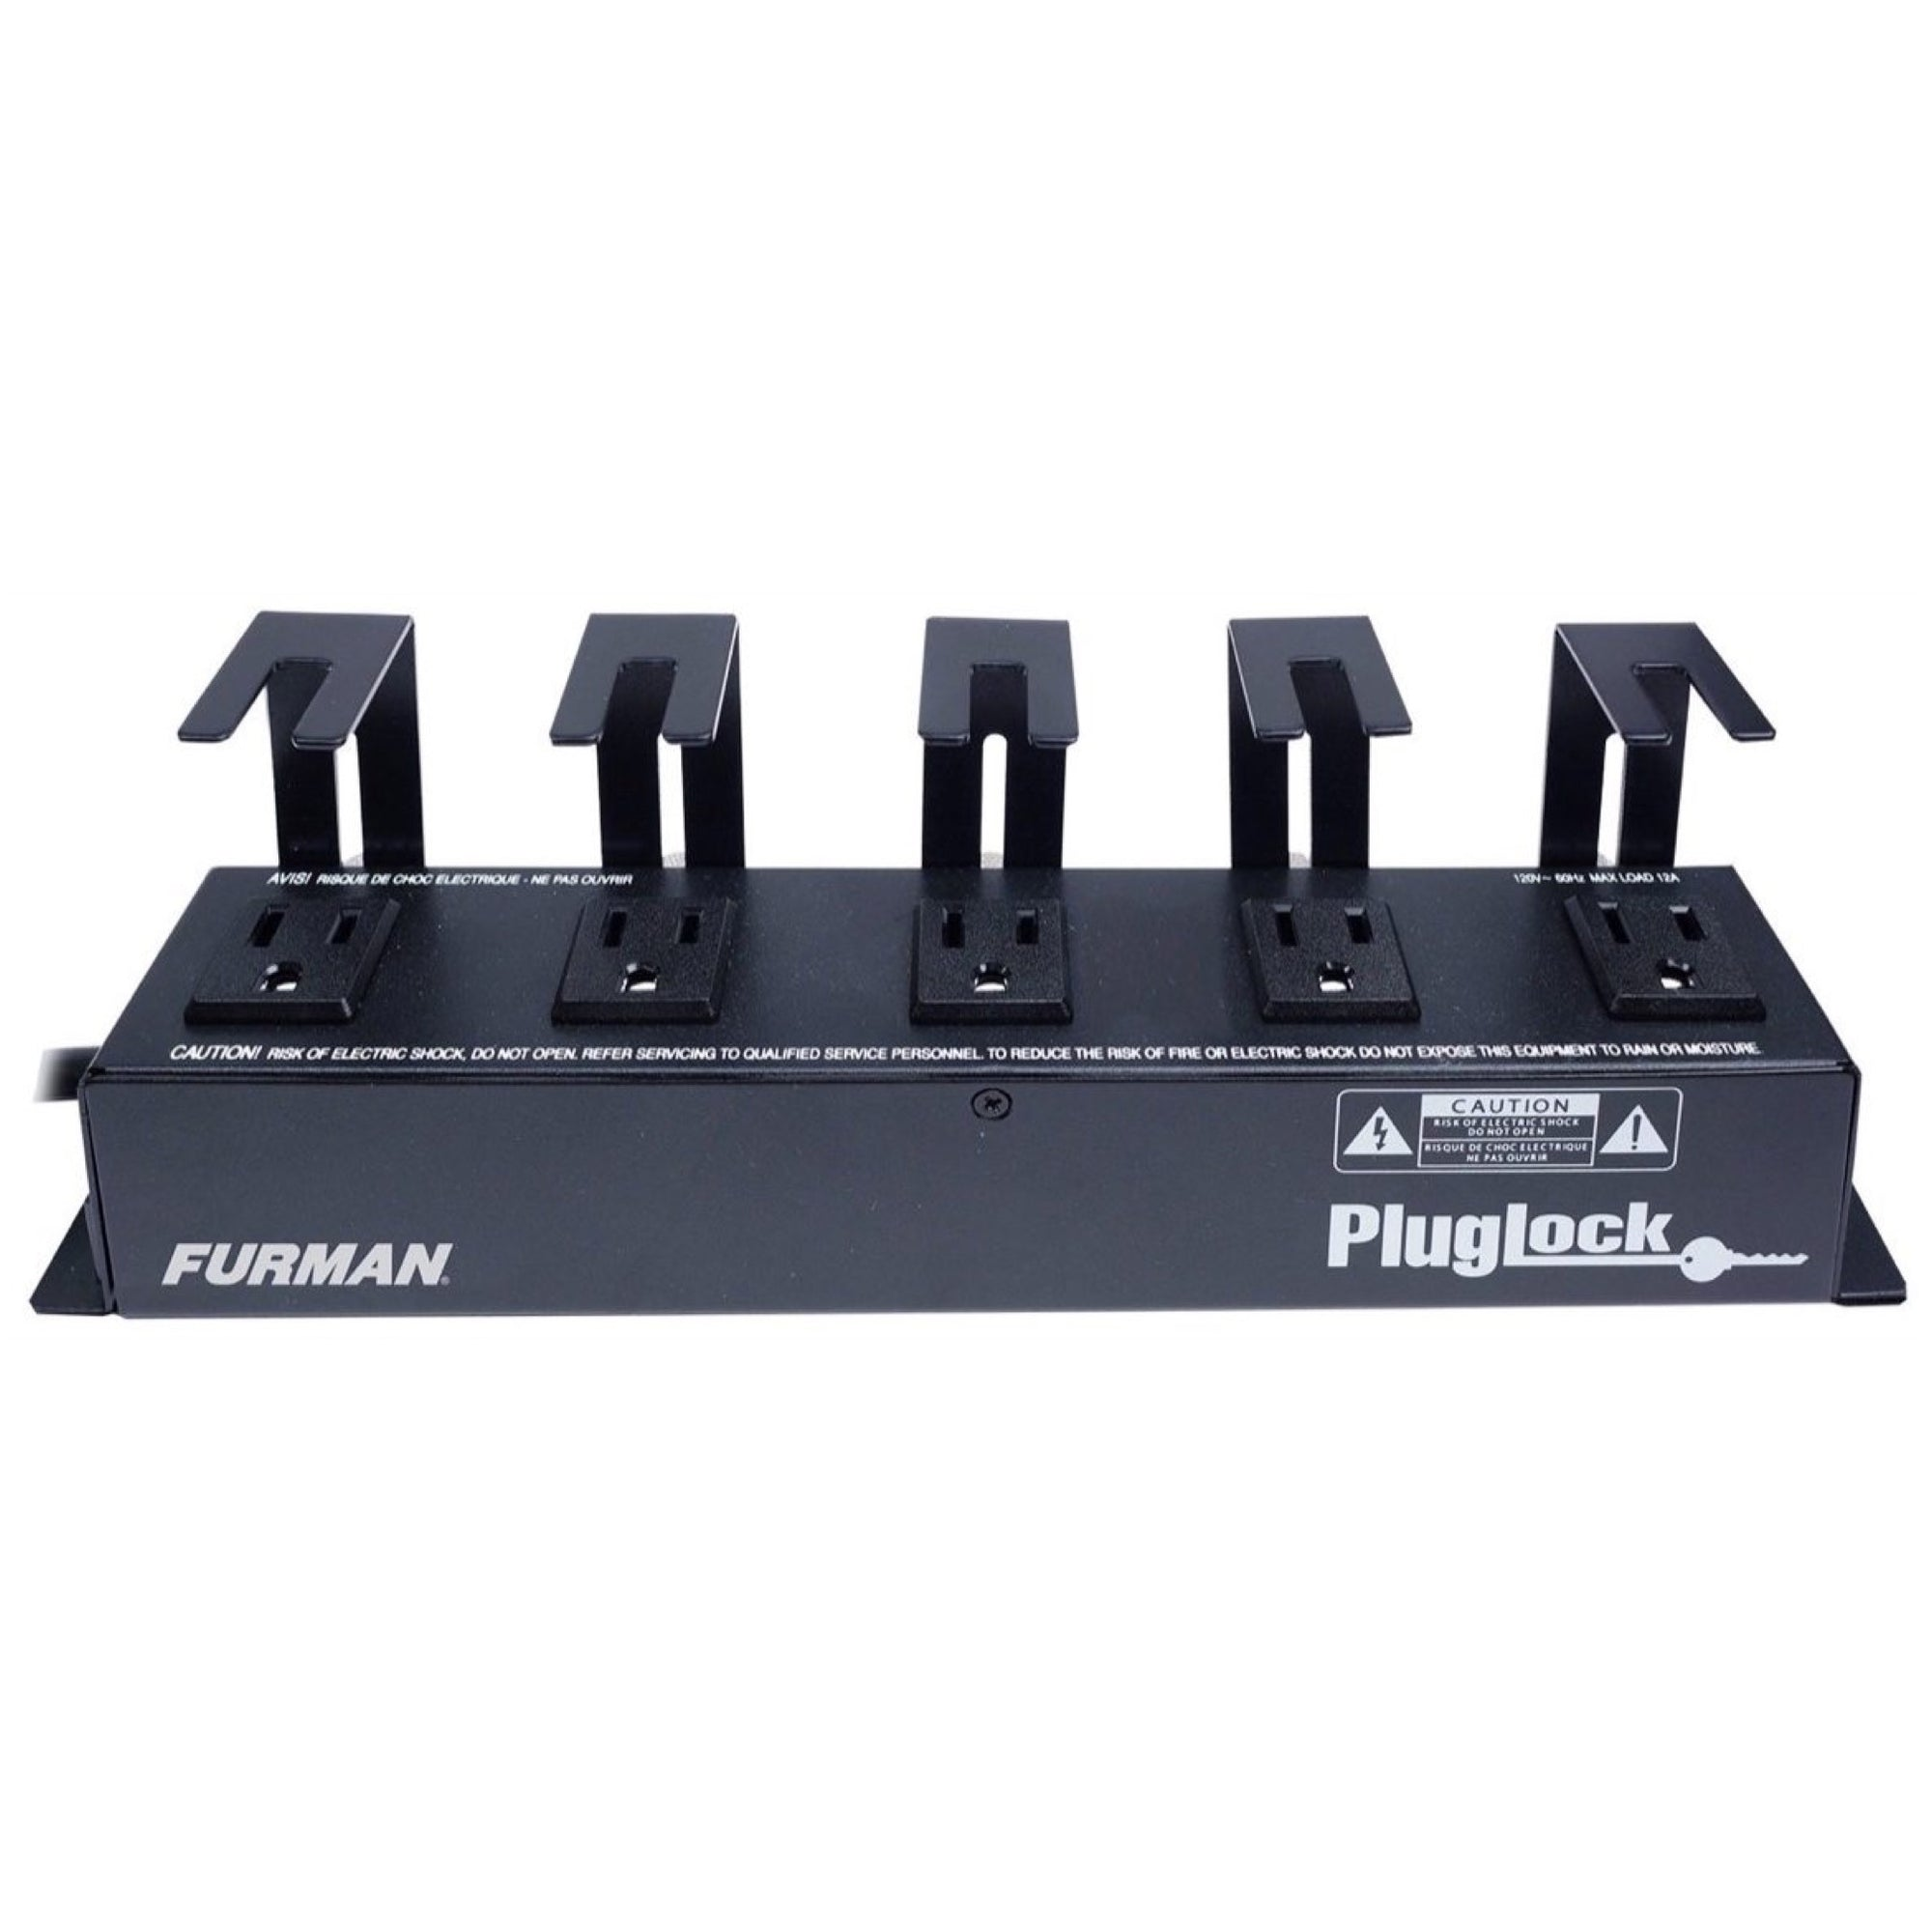 Furman Pluglock Outlet Strip